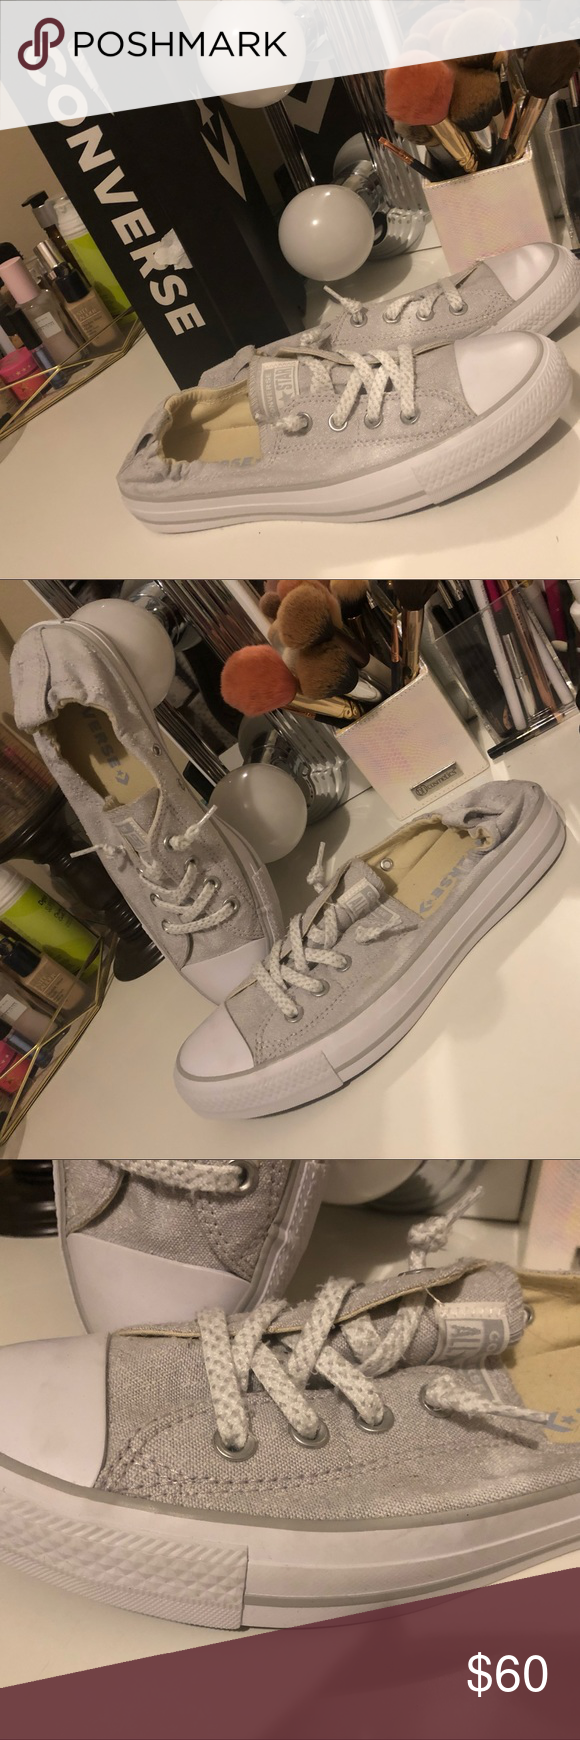 53f5f27bb0e Converse Shoreline Slip Sneaker in Oyster Gray Tried on once and walked  around house and realized they didn t fit me. Brand new.